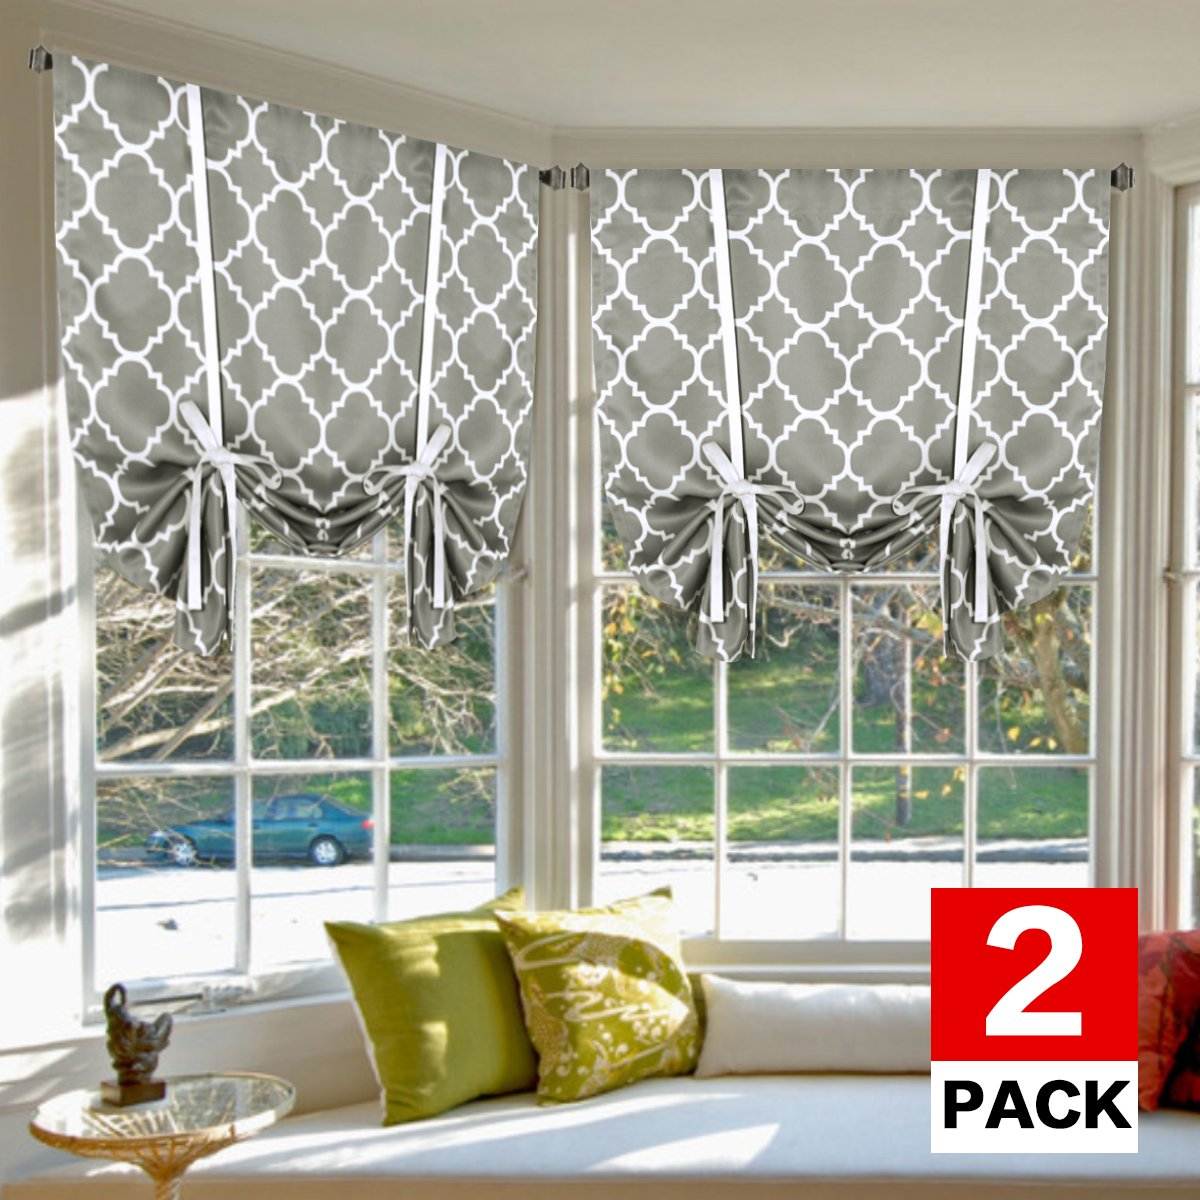 H.VERSAILTEX Blackout Curtains Thermal Insulated Blind (2 Panels) - Printed Moroccan Dove Pattern Room Darkening Tie Up Panels Adjustable Window Shades for Living Room, Rod Pocket, 42 x 63 Inch Long